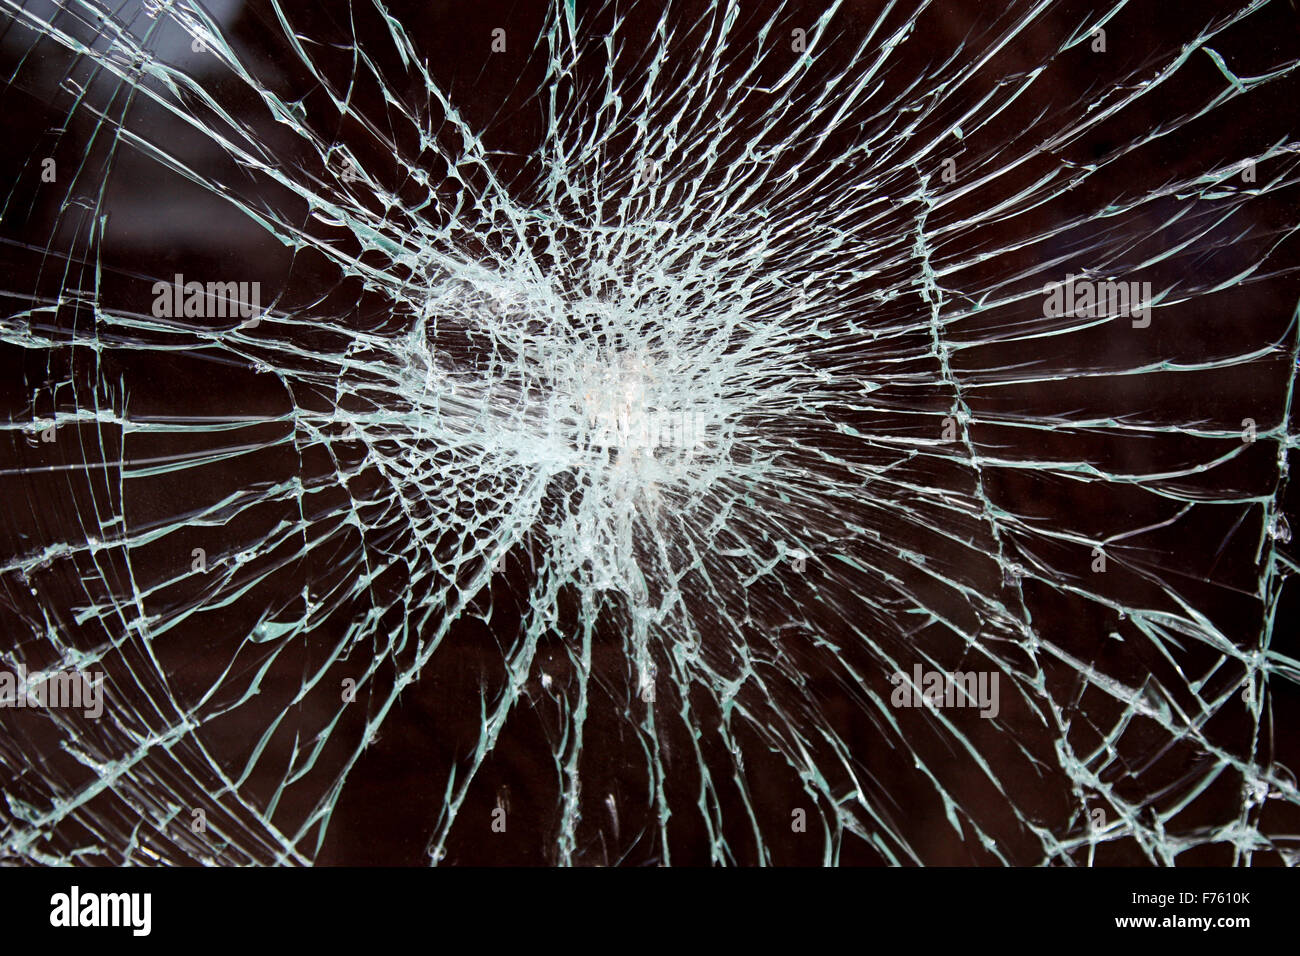 a smashed piece of glass on dark background - Stock Image